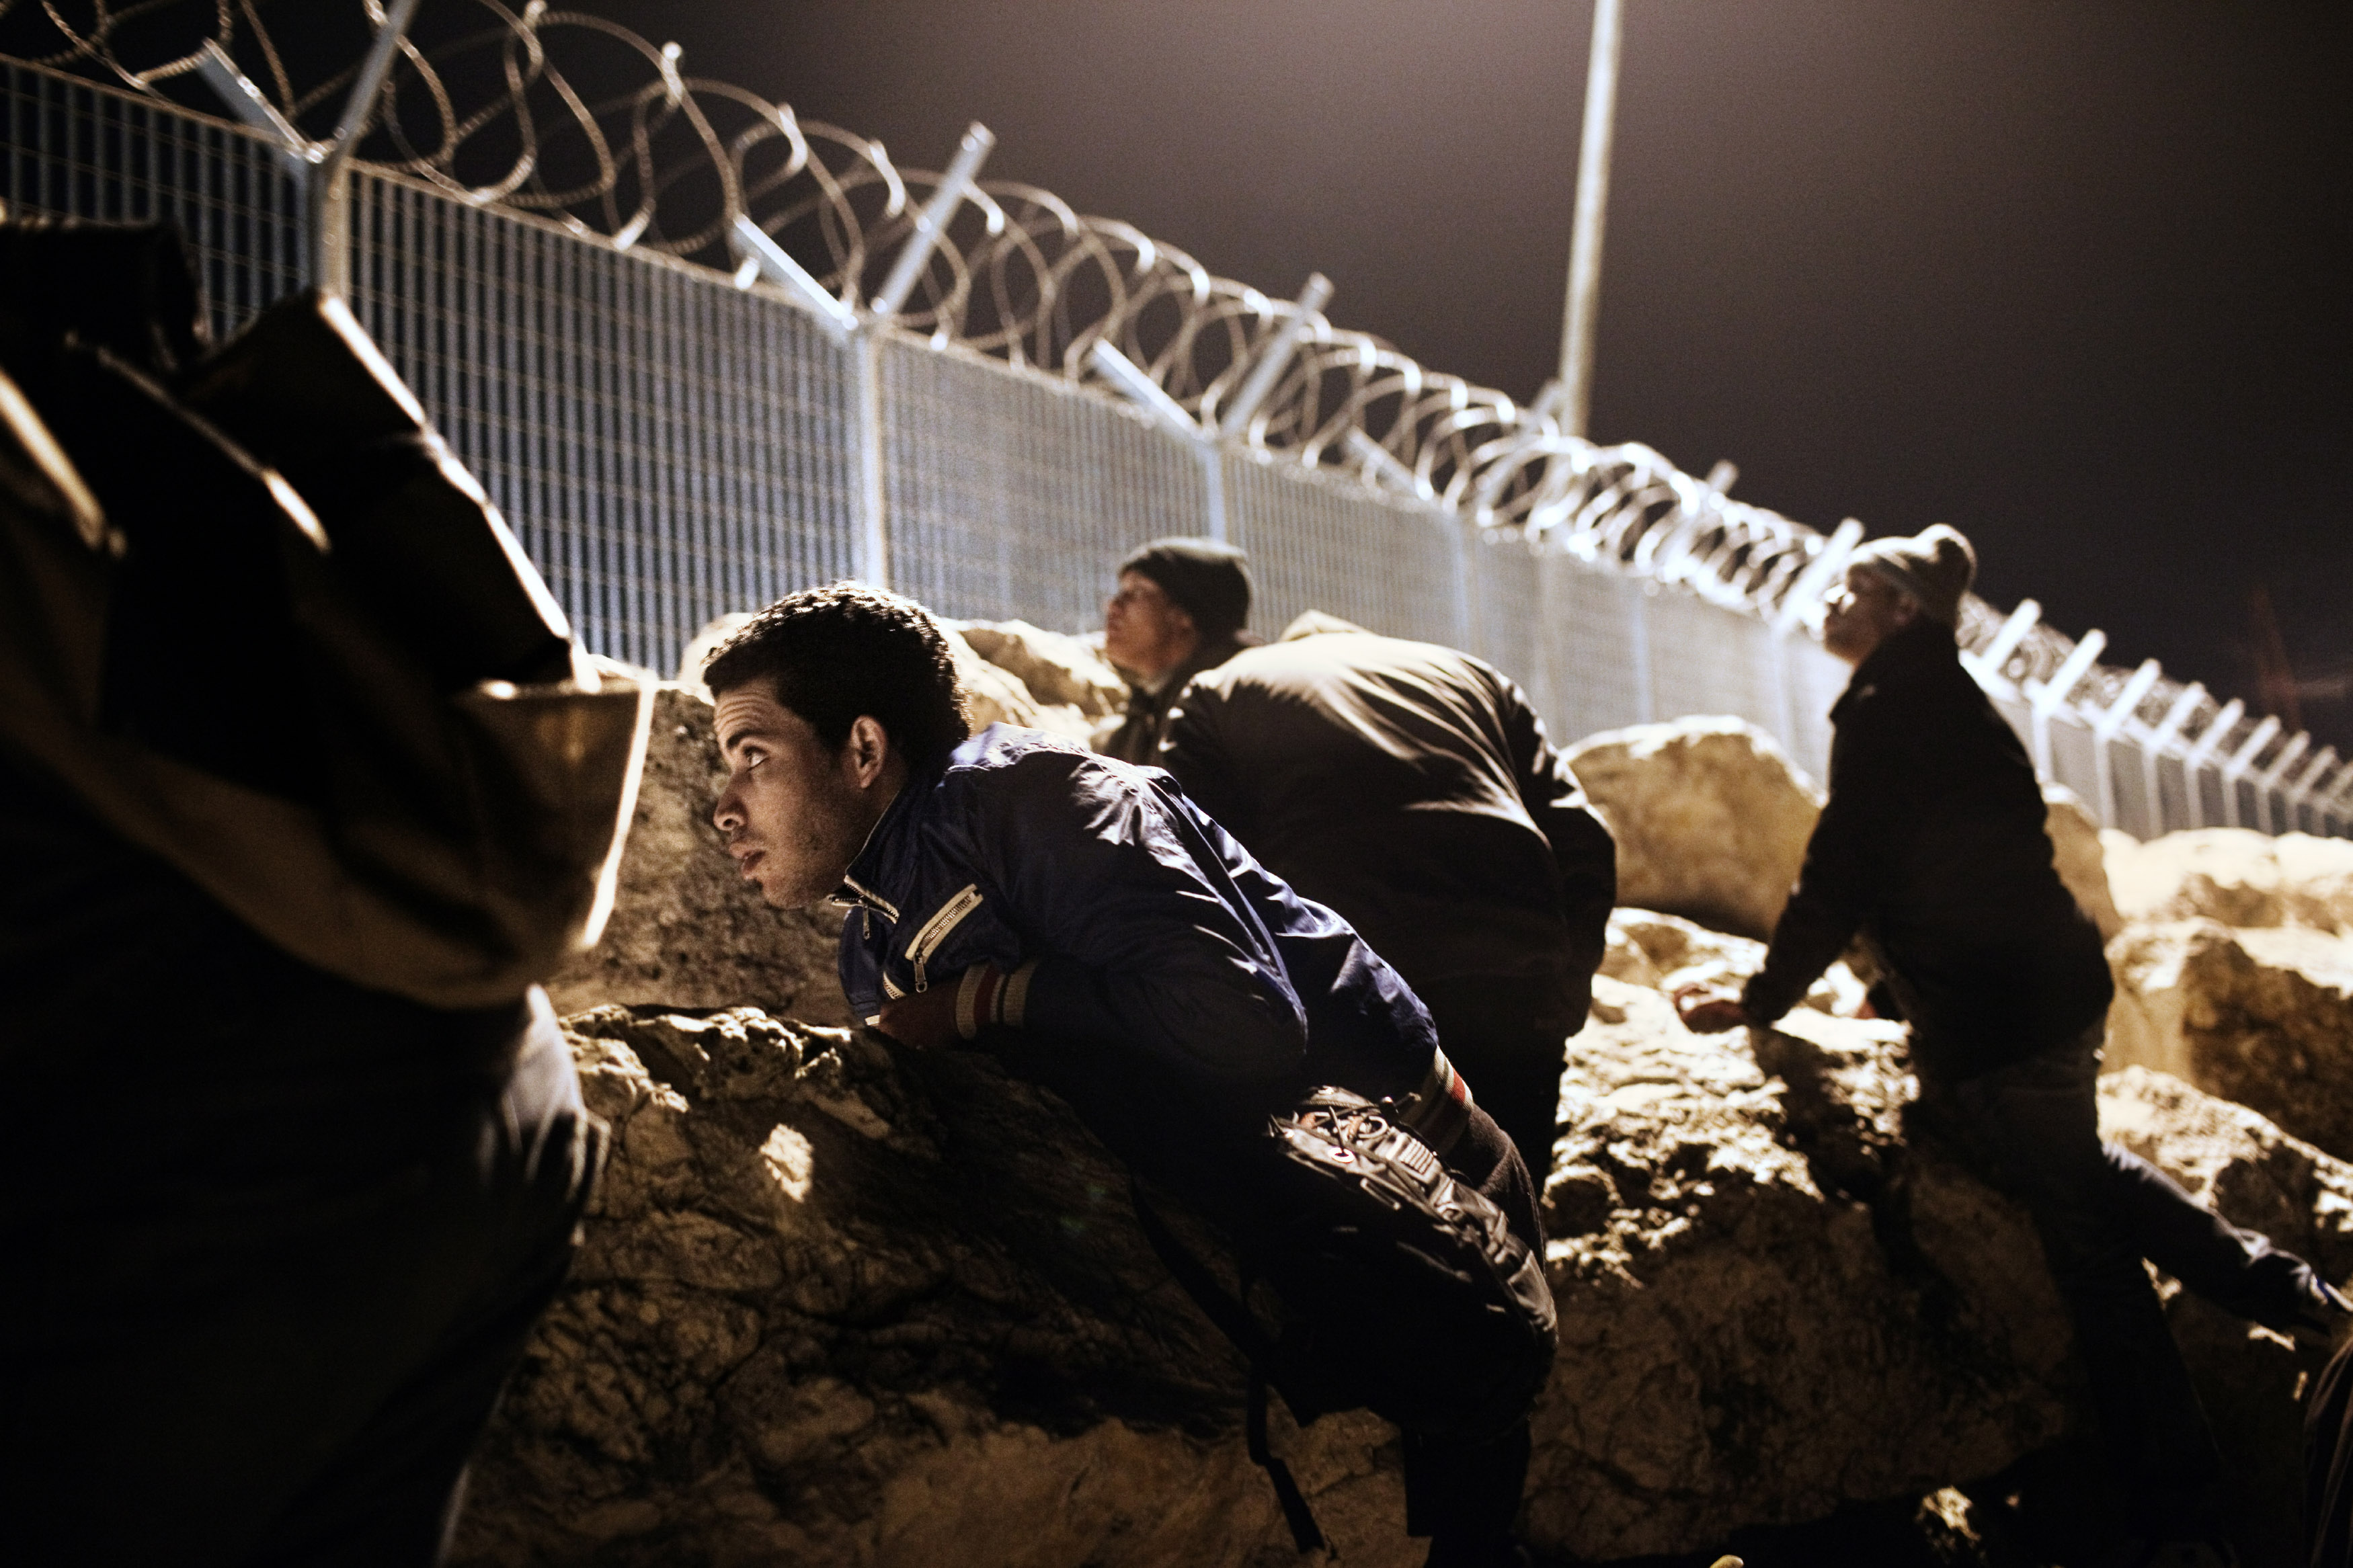 Corinth, Greece  Mohamed from Morocco and his friends hid behind the rocks at the port during the night, waiting for the right moment to illegally board a ship to Italy.